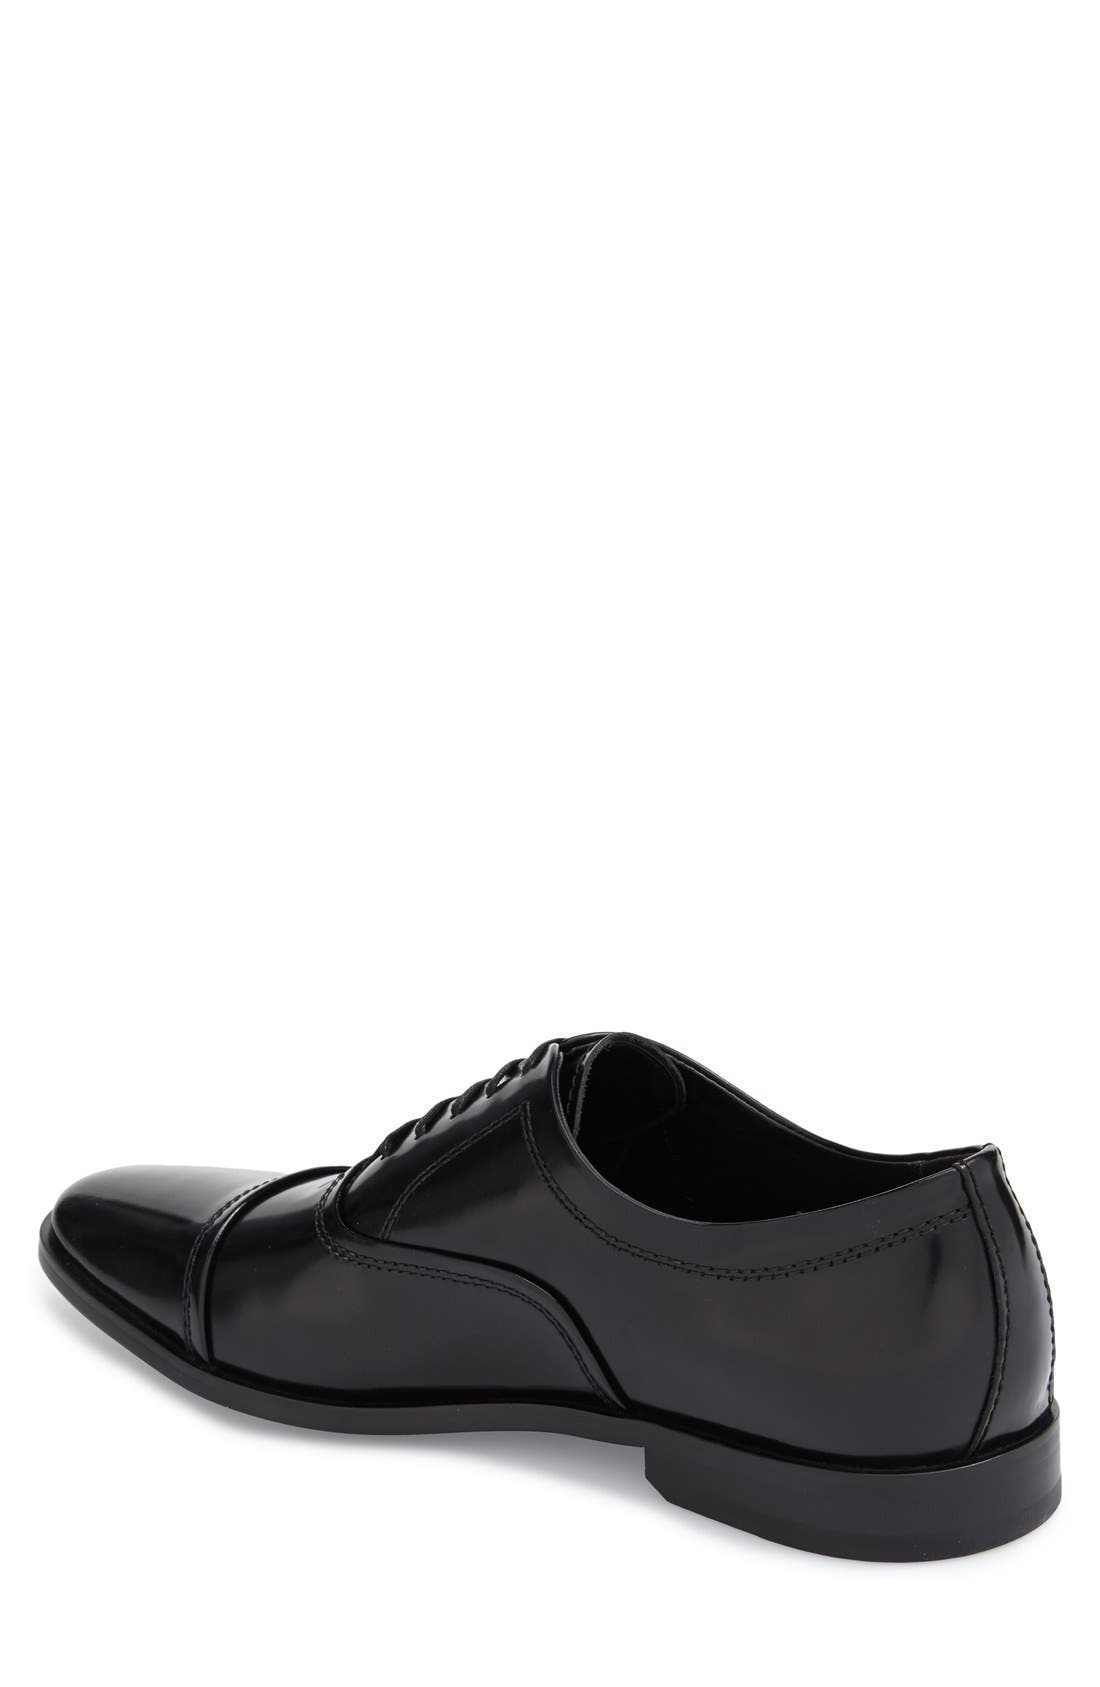 'Nino' Cap Toe Oxford,                             Alternate thumbnail 2, color,                             001